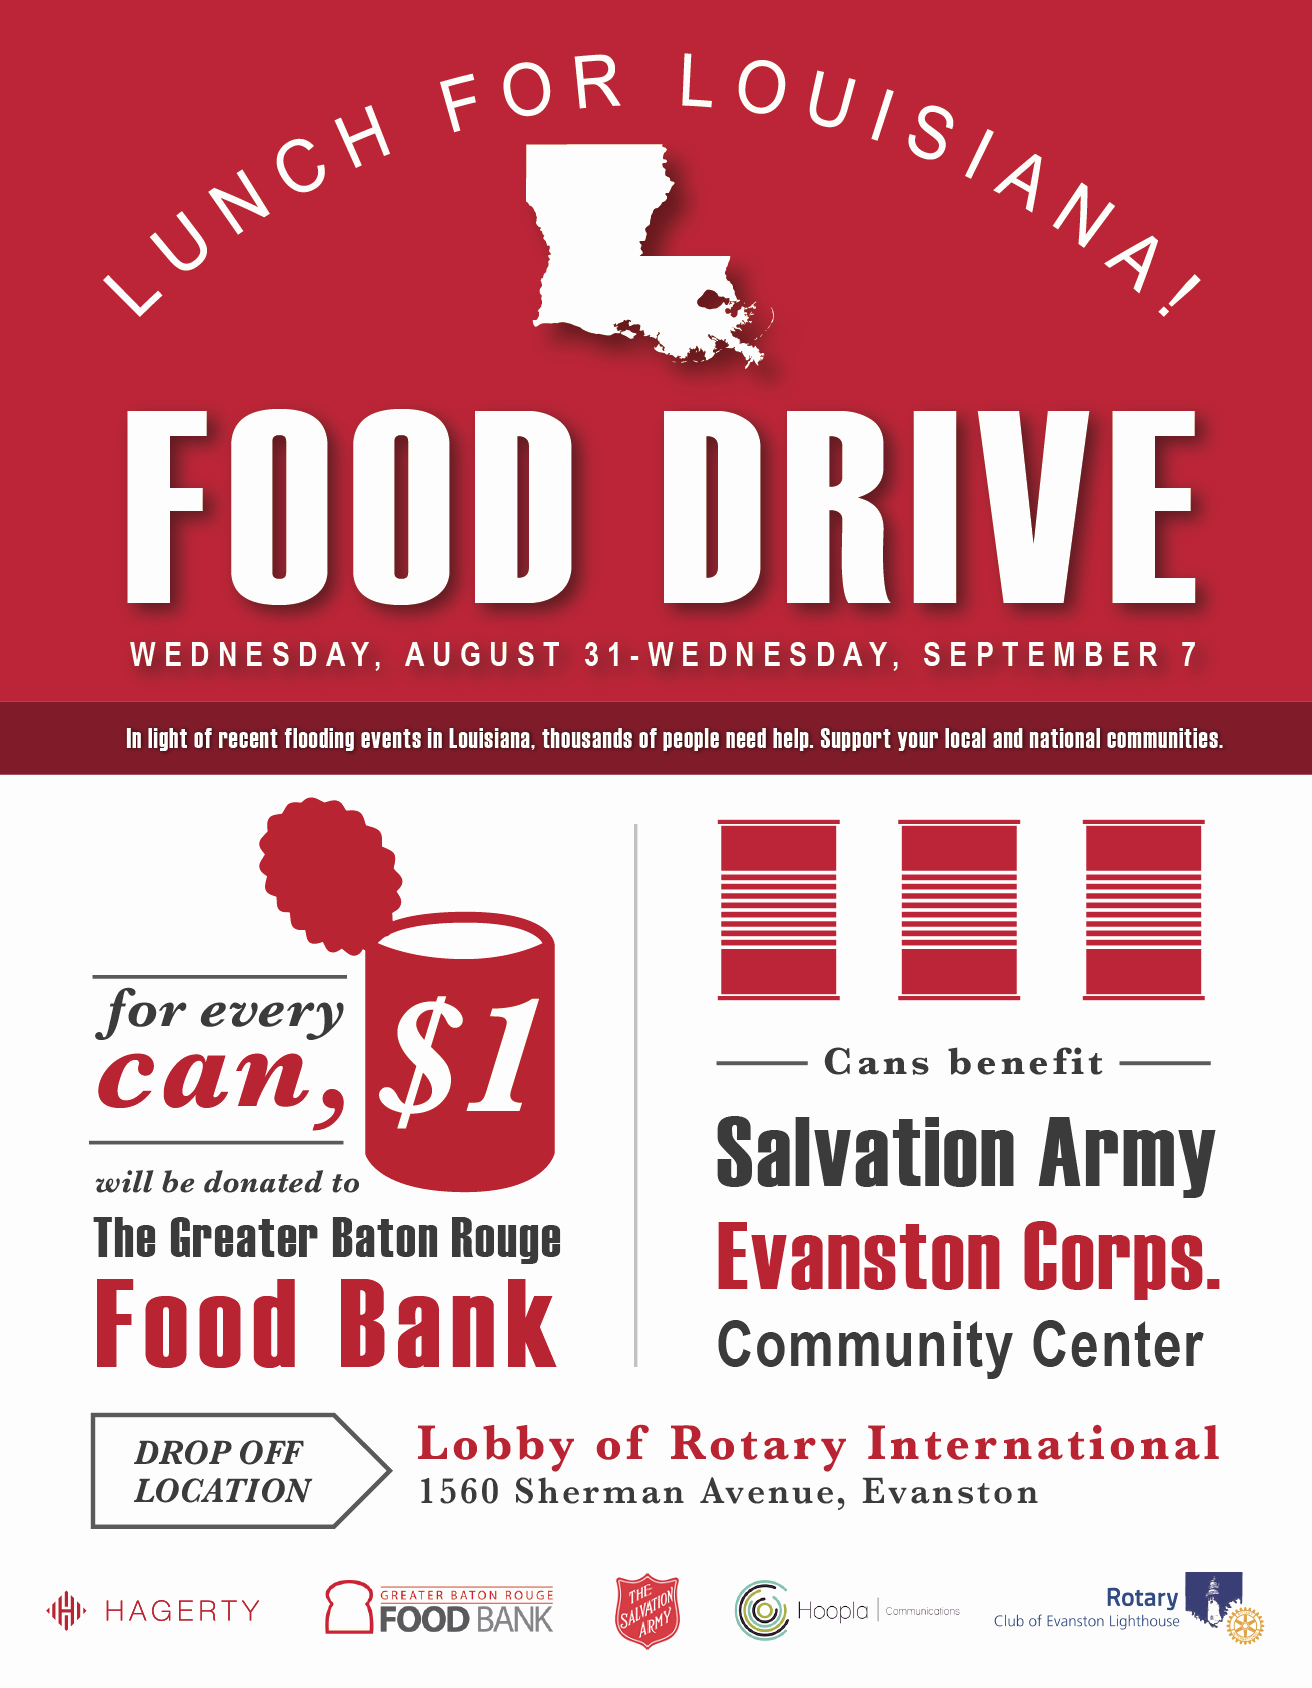 Canned Food Drive Flyer Lovely Louisiana Food Drive Flyer Hagerty Consulting